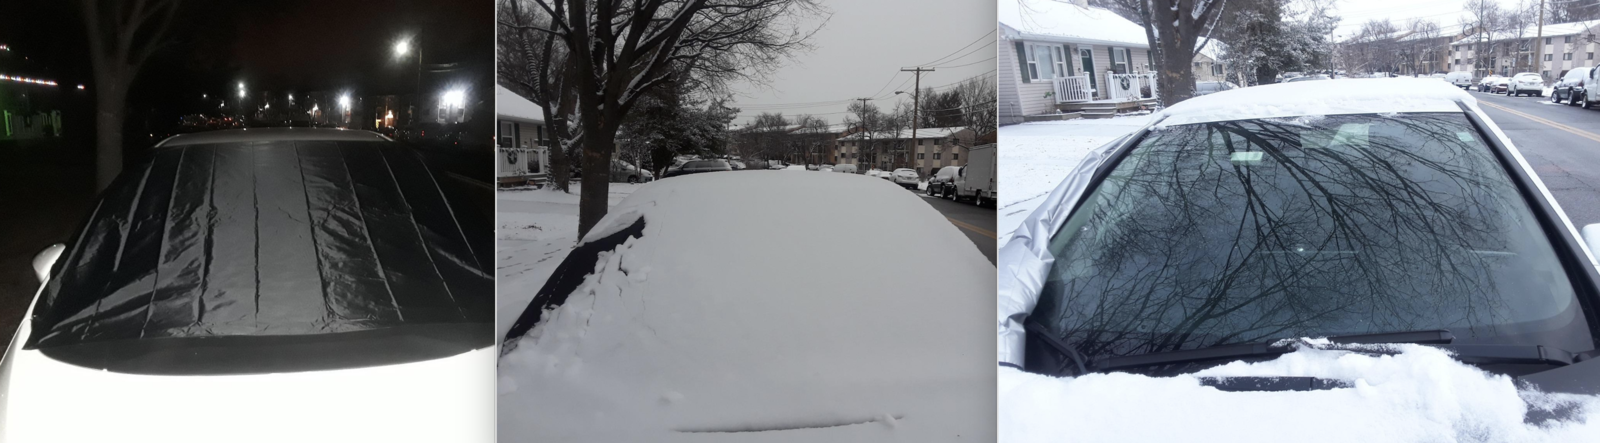 reviewer image showing the cover on their car windshield and then easily removing the snow from it